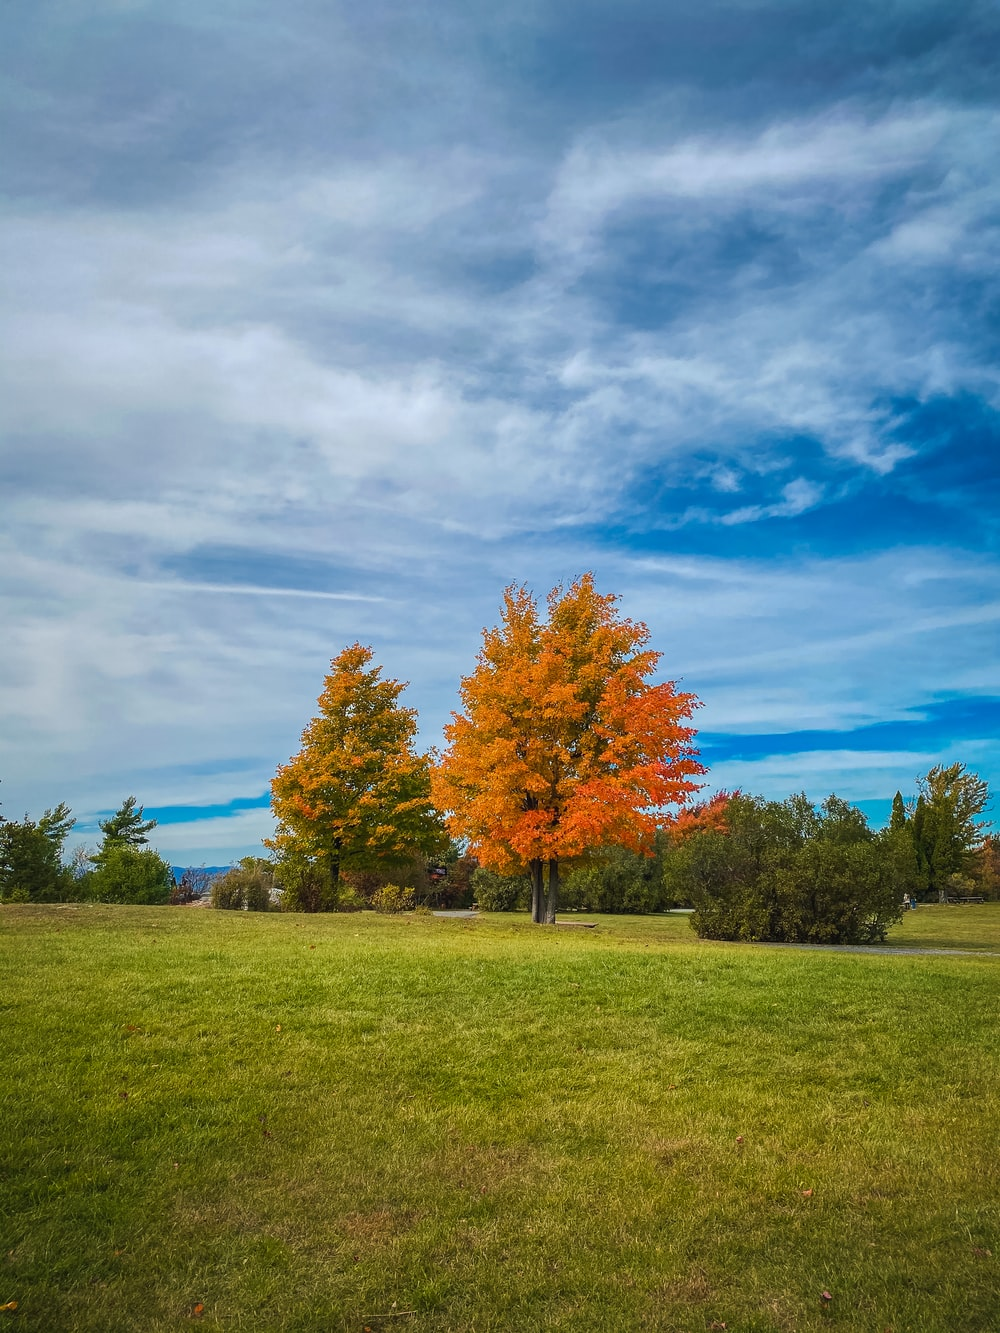 green and brown trees on green grass field under blue sky and white clouds during daytime